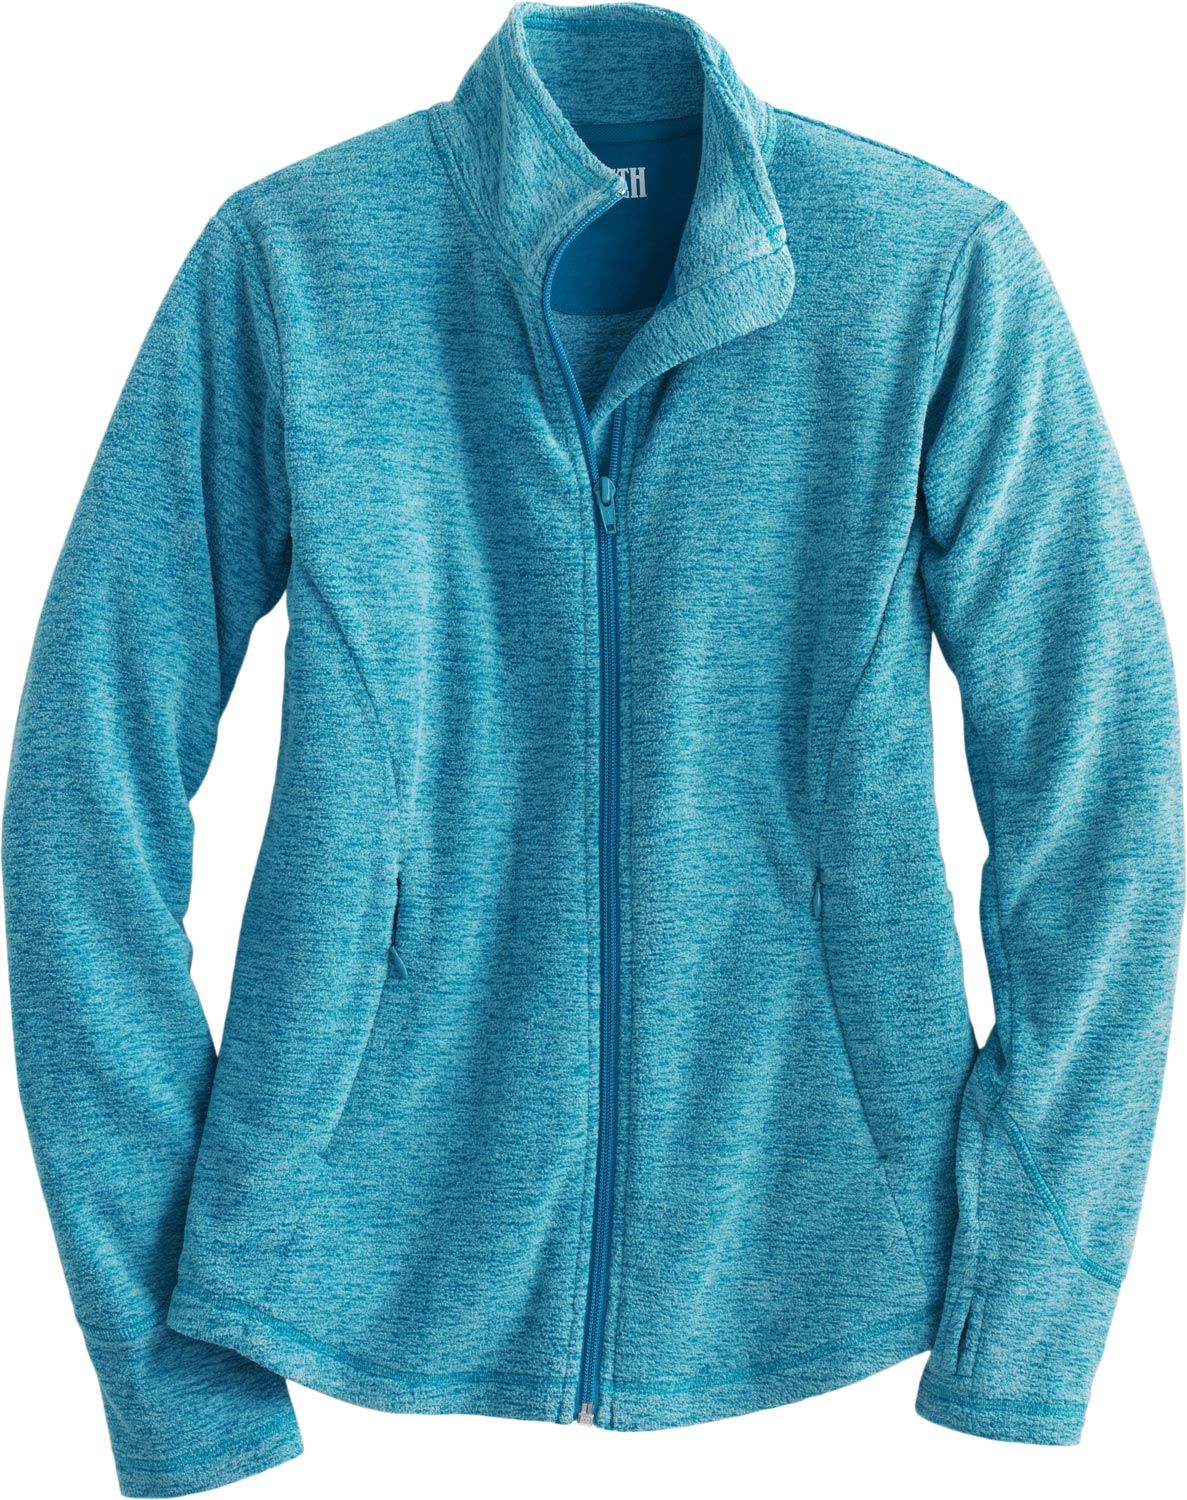 Youull sink right into the super soft plush womenus zip up fleece